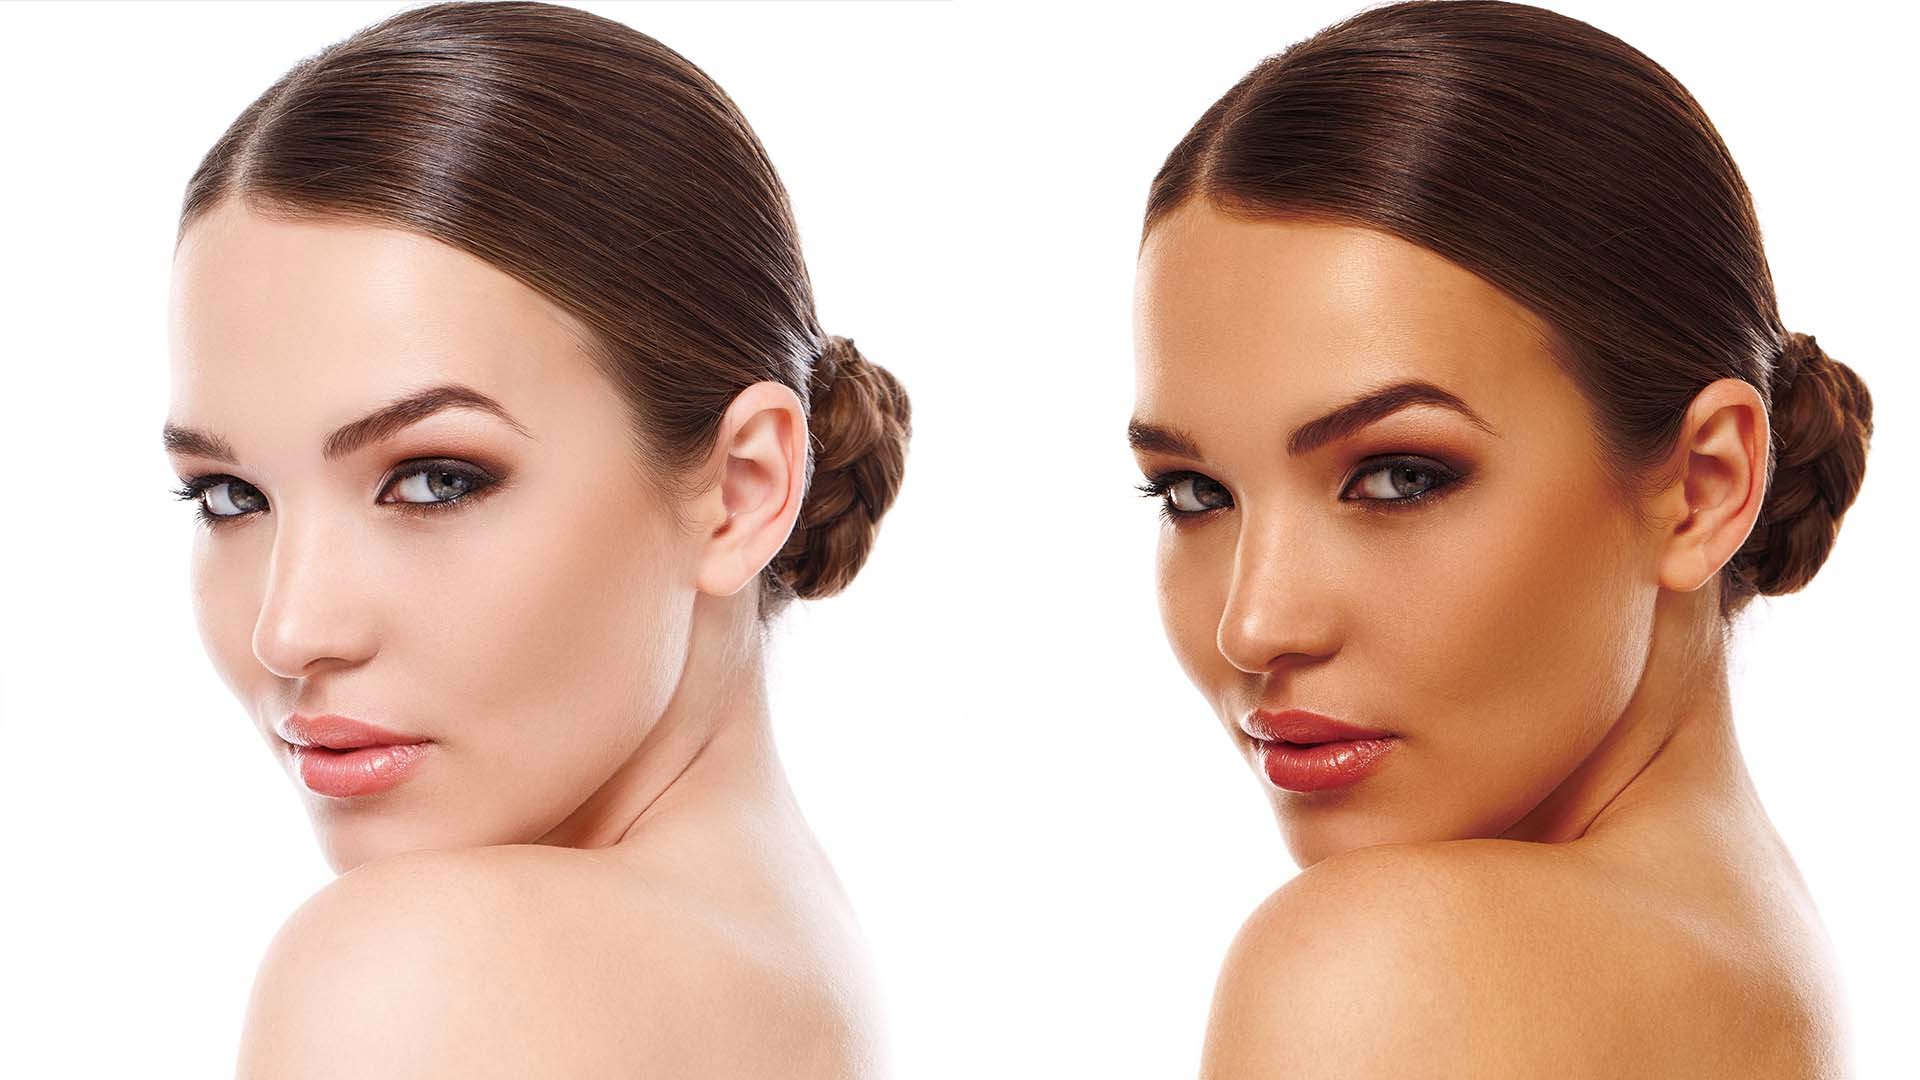 How to Add a Tan to Your Model in Photoshop